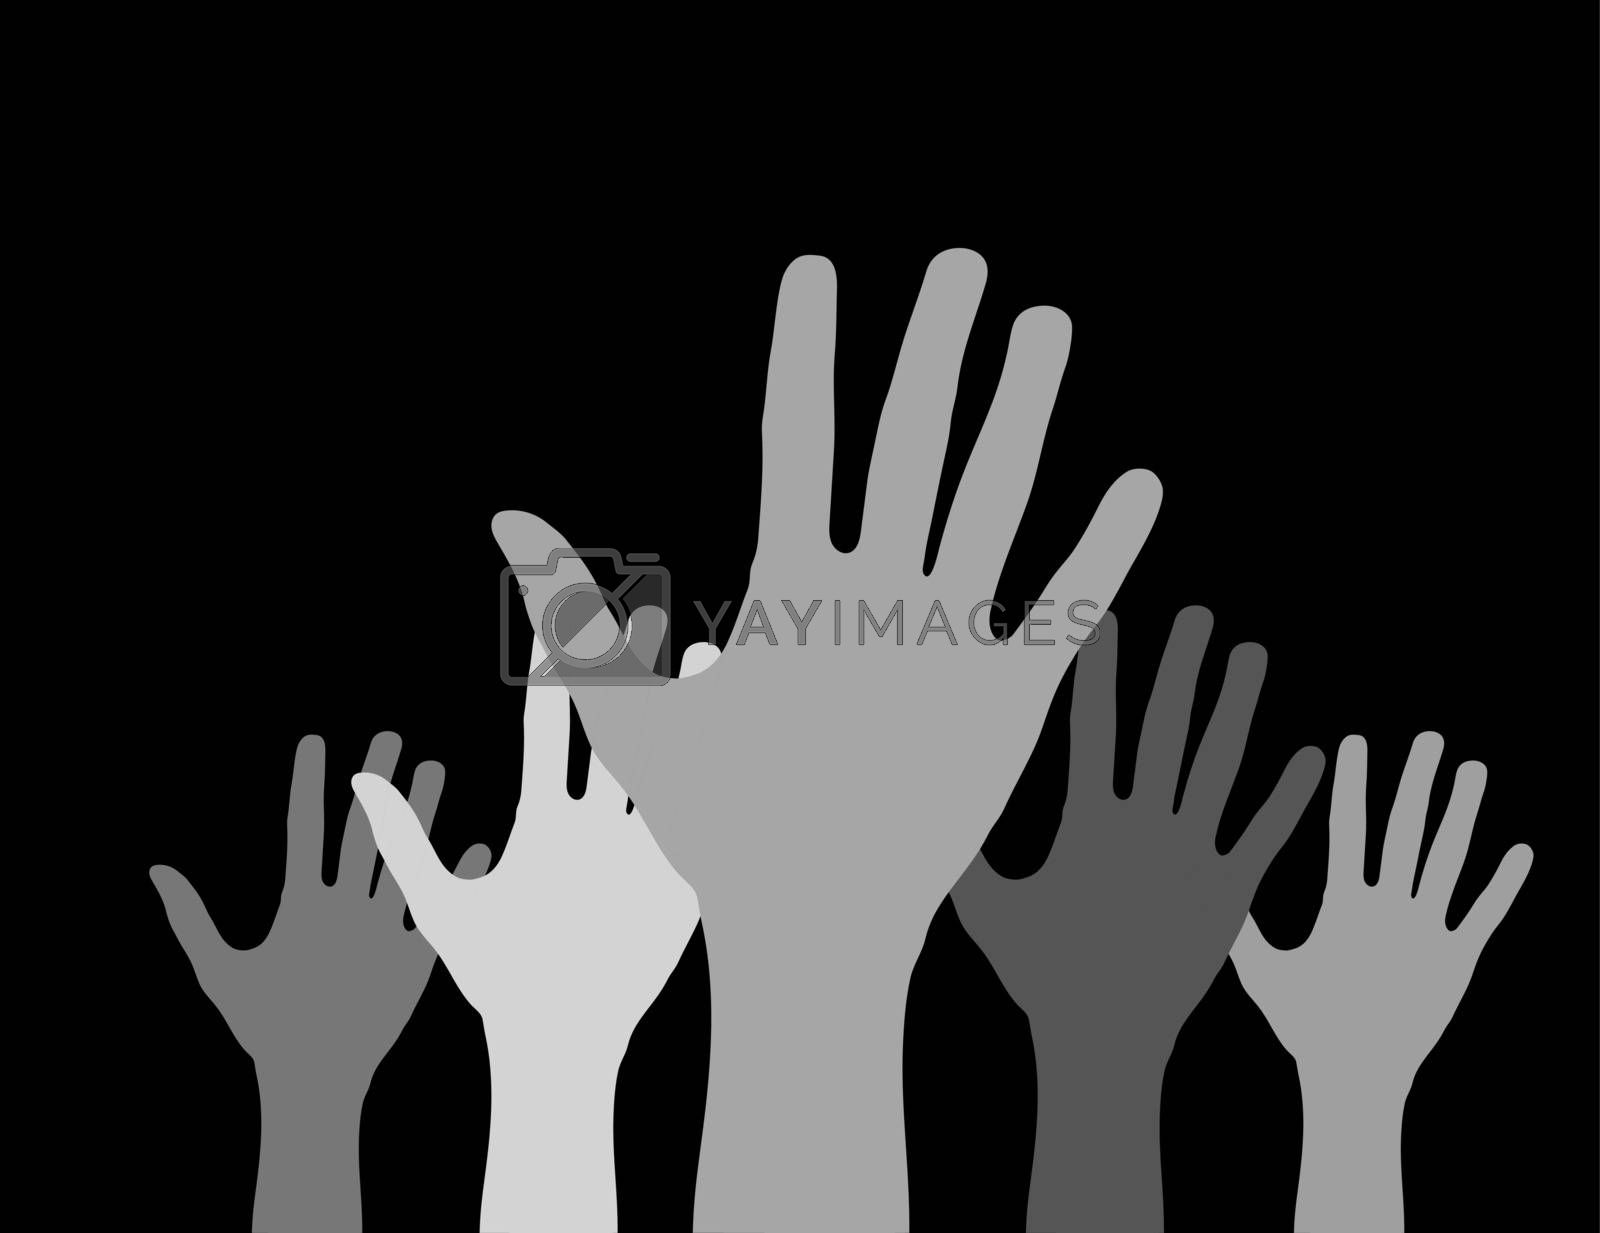 Royalty free image of Hands with open palms extended upwards, flat design by Grommik